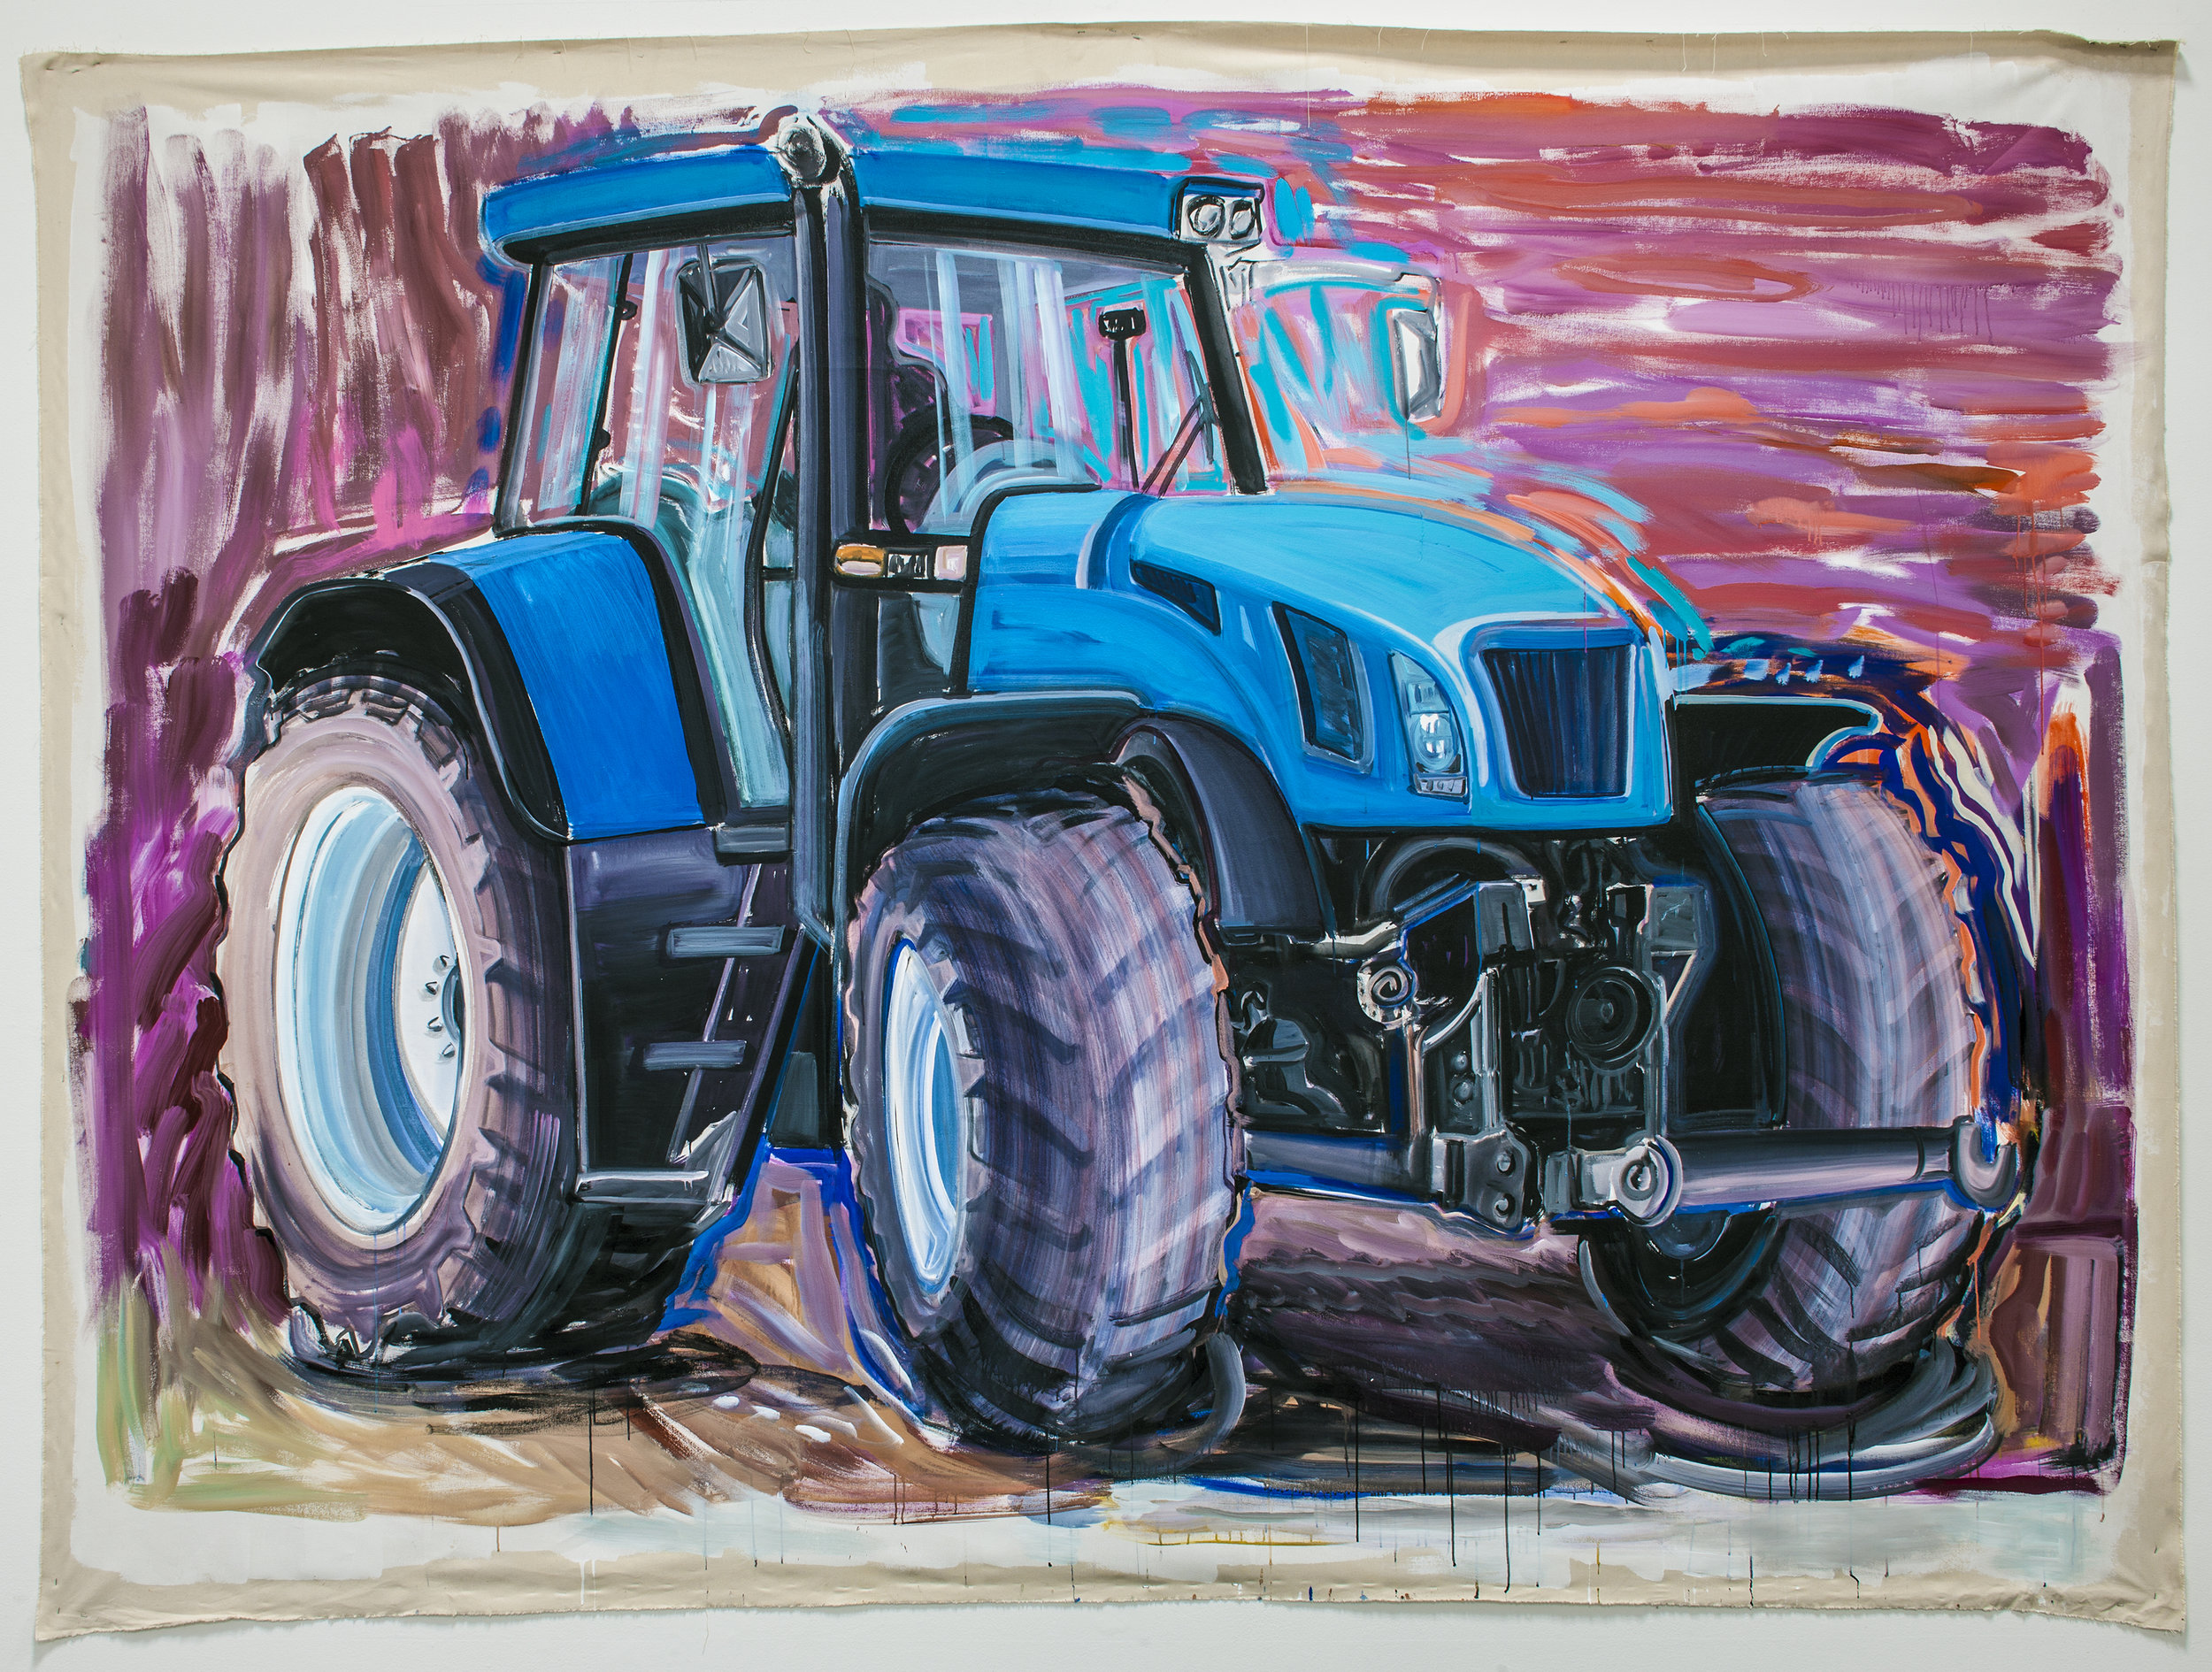 "Big Friend (New Holland Tractor),   2013  Acrylic on  unstretched canvas  113"" x 144"" inches   Photo credit: Grant Mudford"